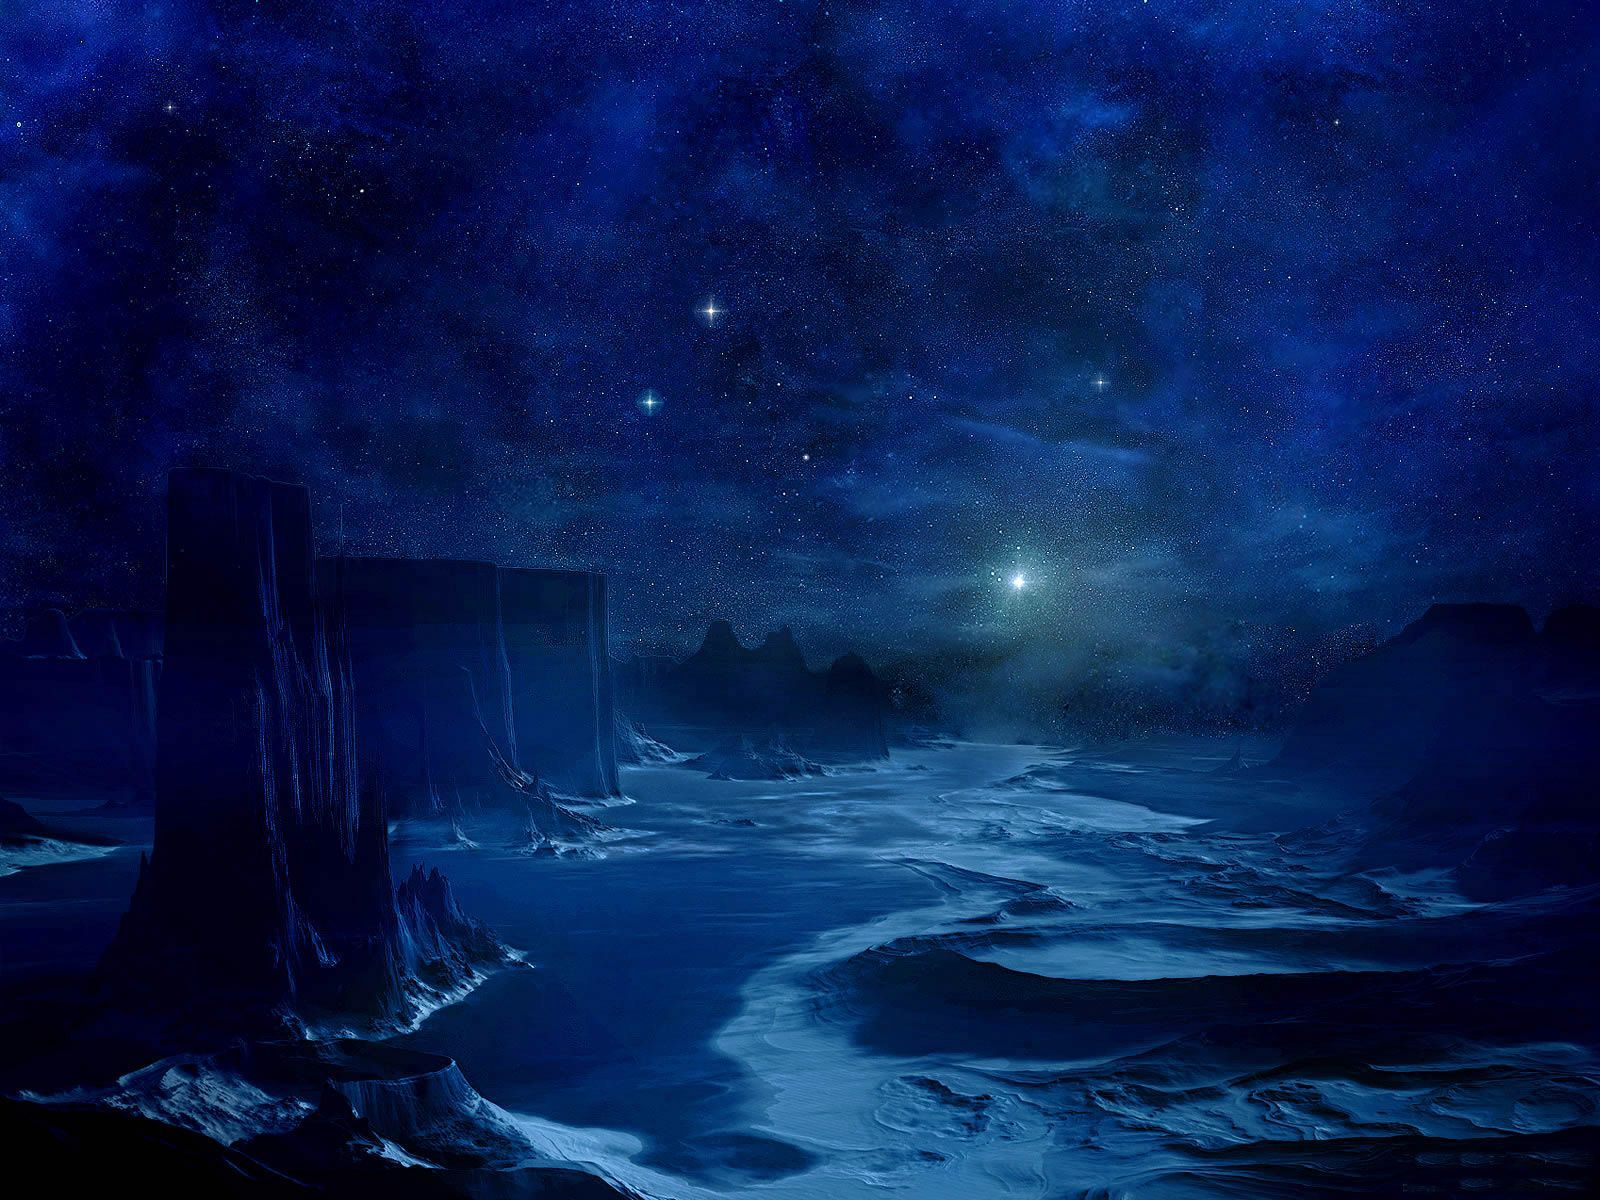 neptune surface appearance - Google Search   The Solar ...